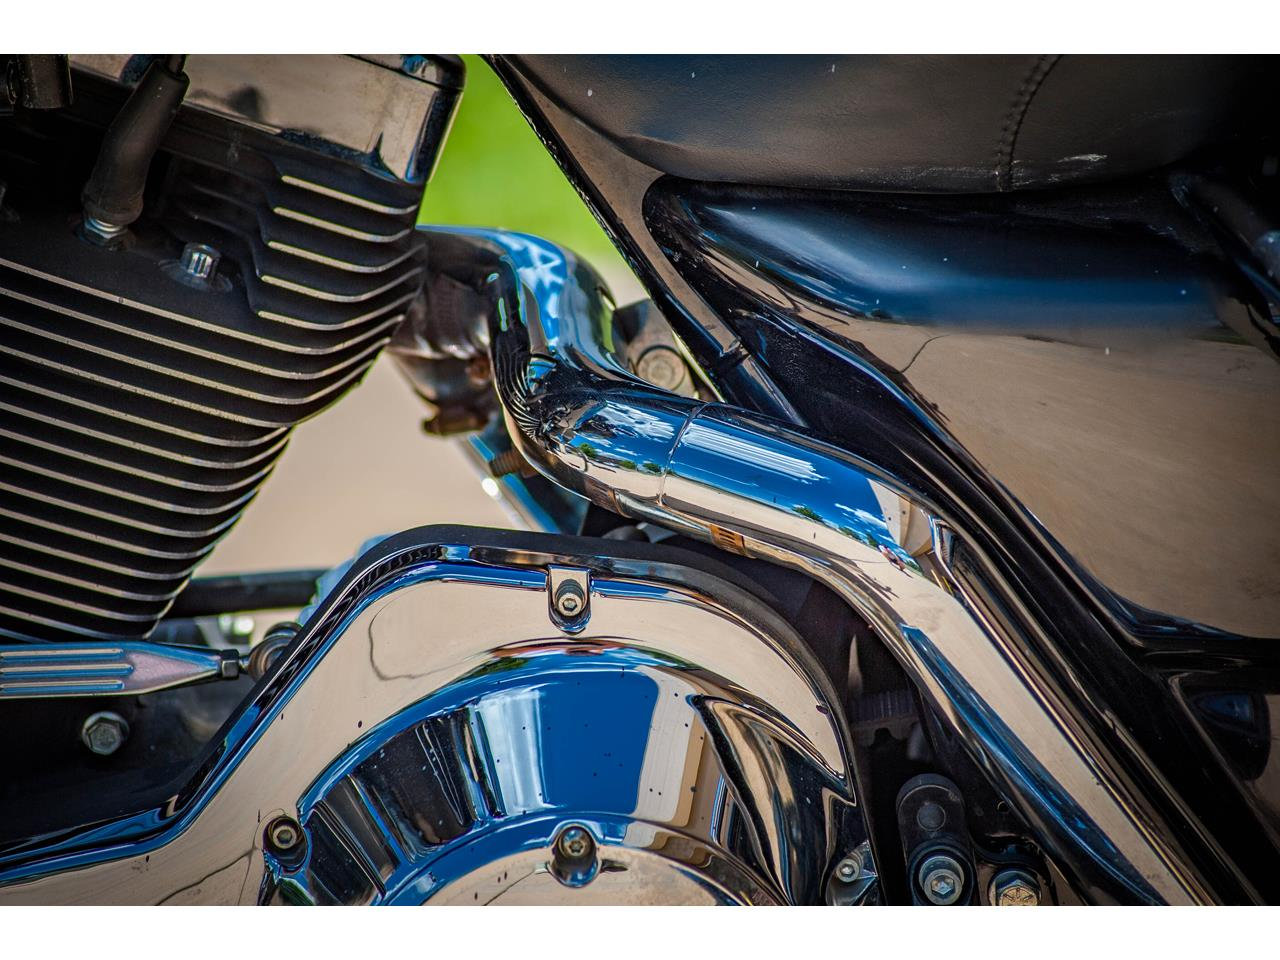 2004 Harley-Davidson Motorcycle for sale in O'Fallon, IL – photo 76